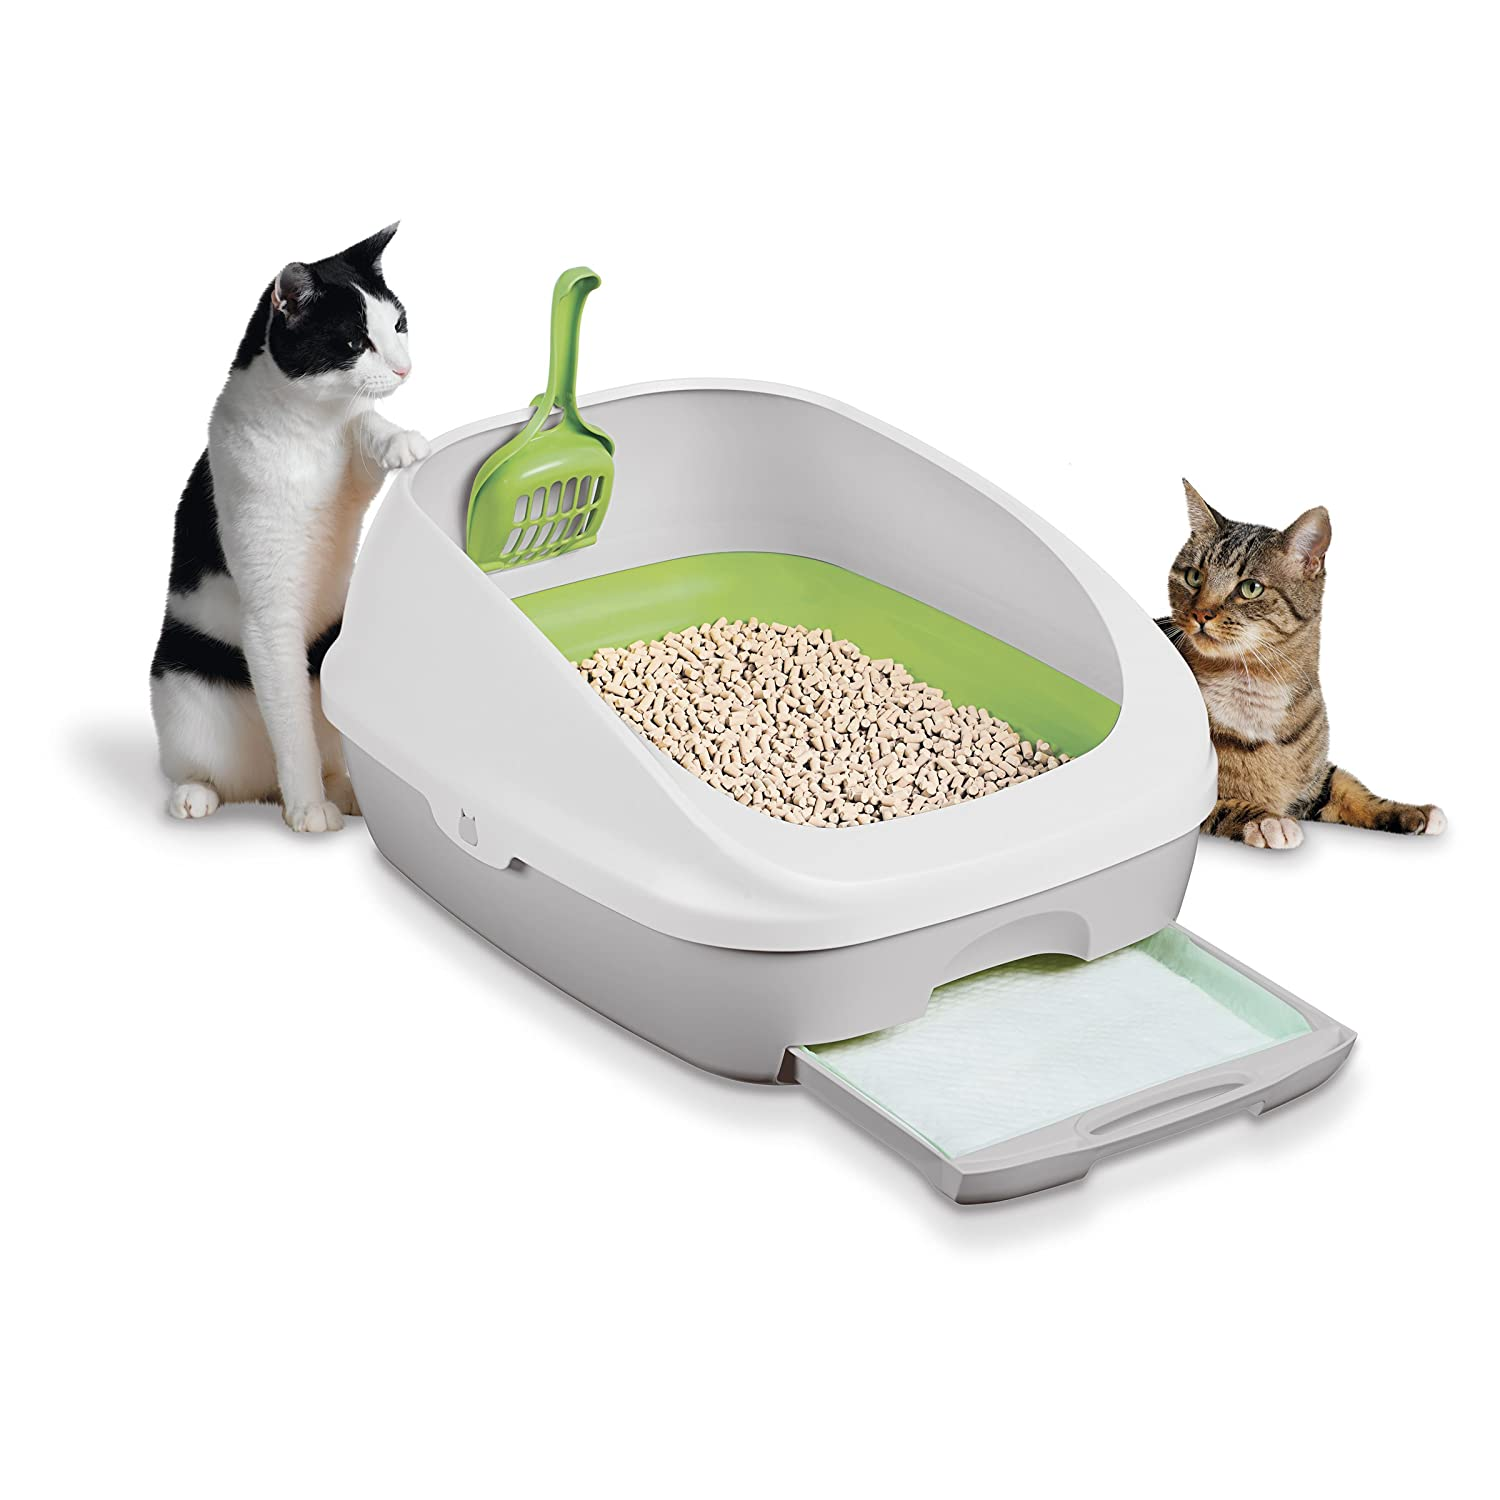 Superbe Tidy Cats Cat Litter Box Kit System